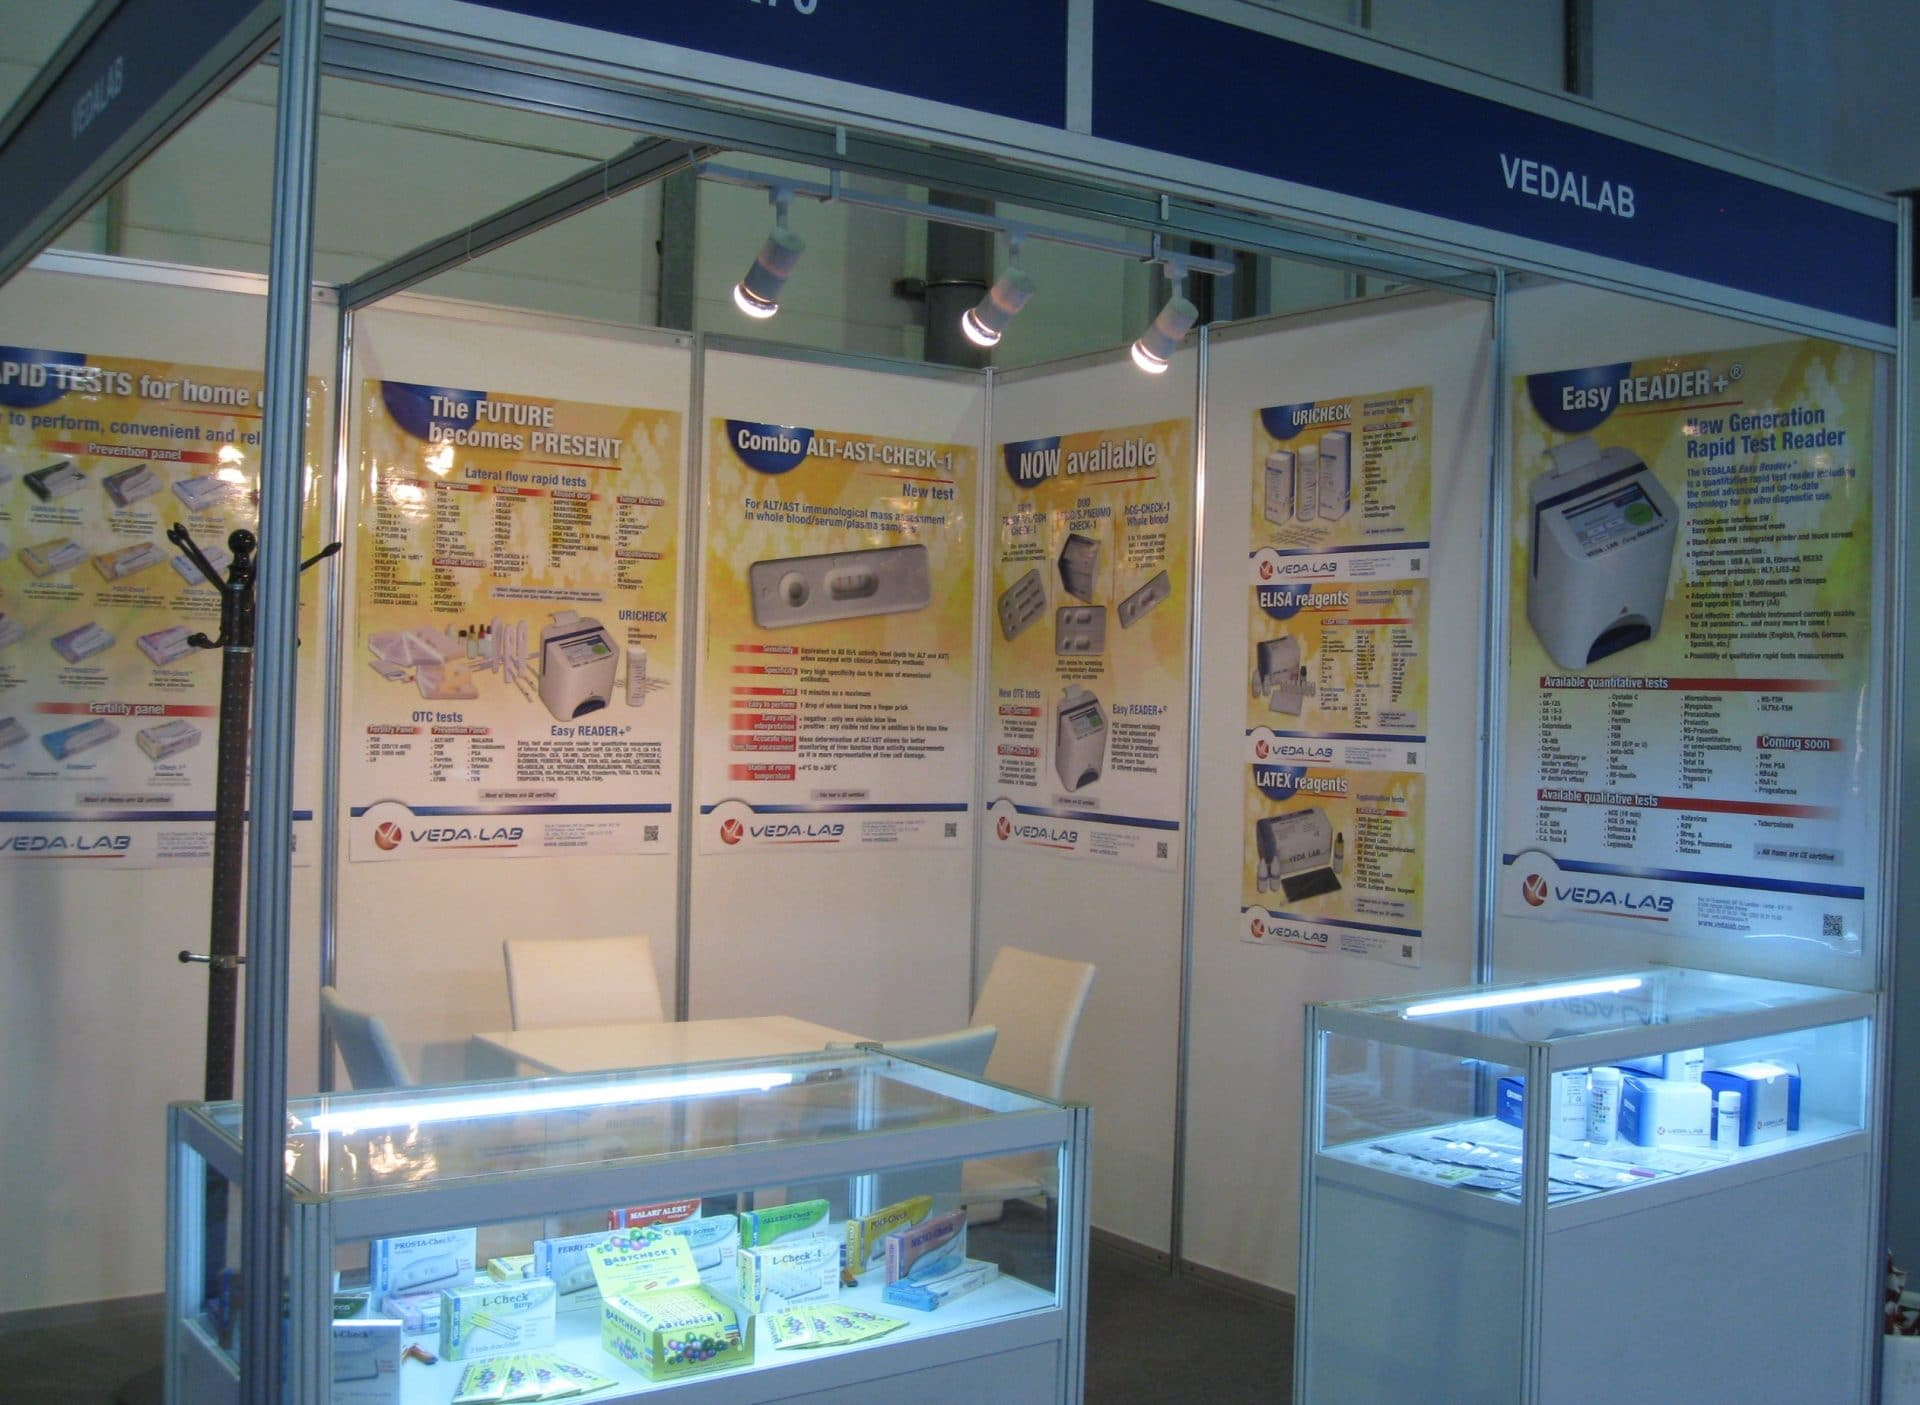 MEDLAB EXHIBITION